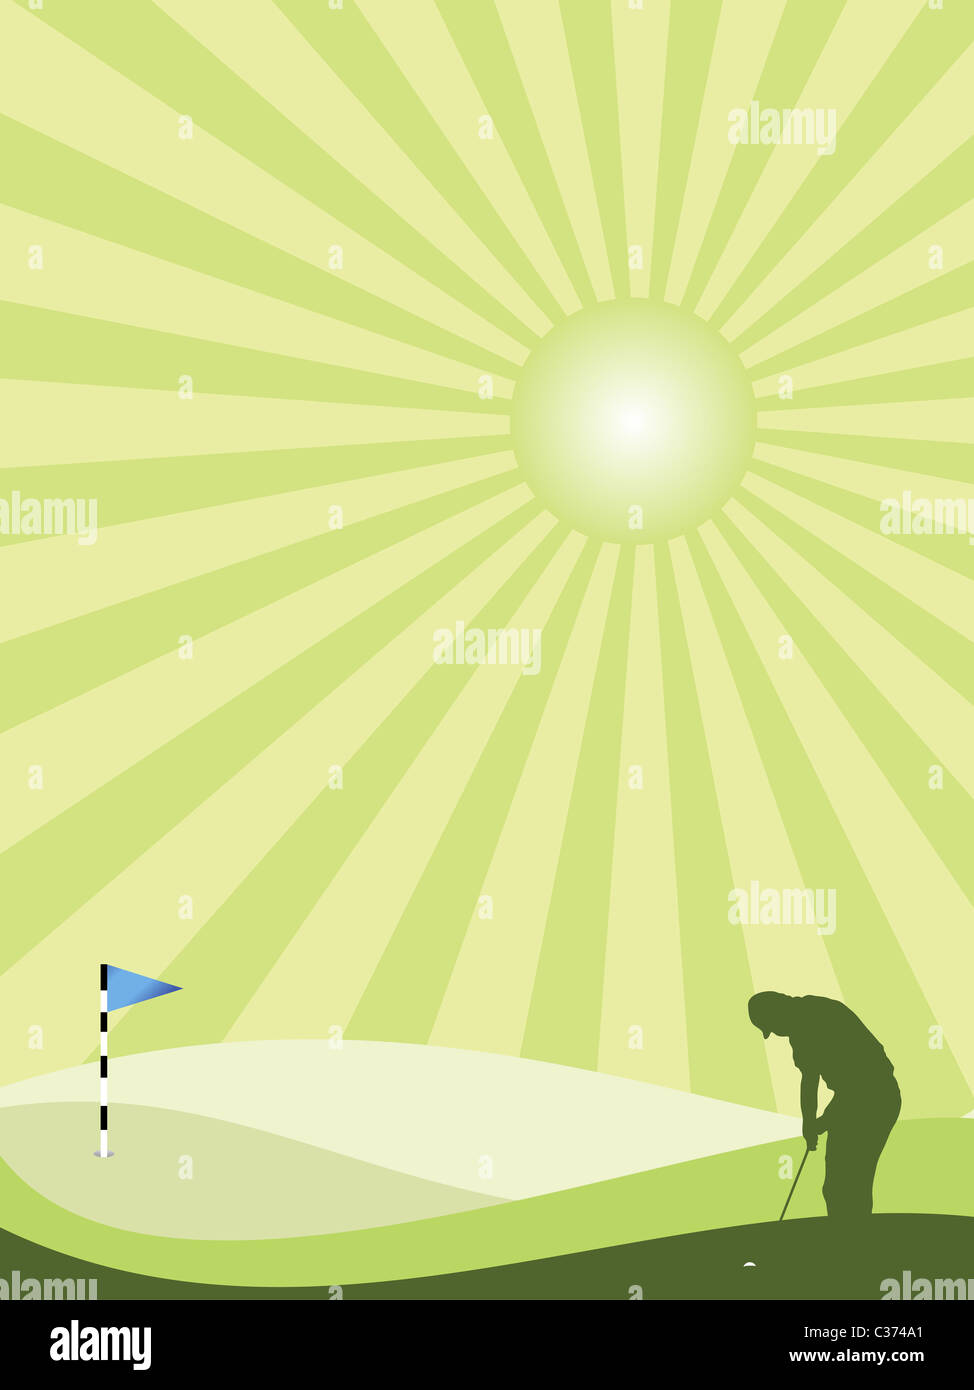 Golfer silhouette in green rolling countryside with sunburst sky - Stock Image